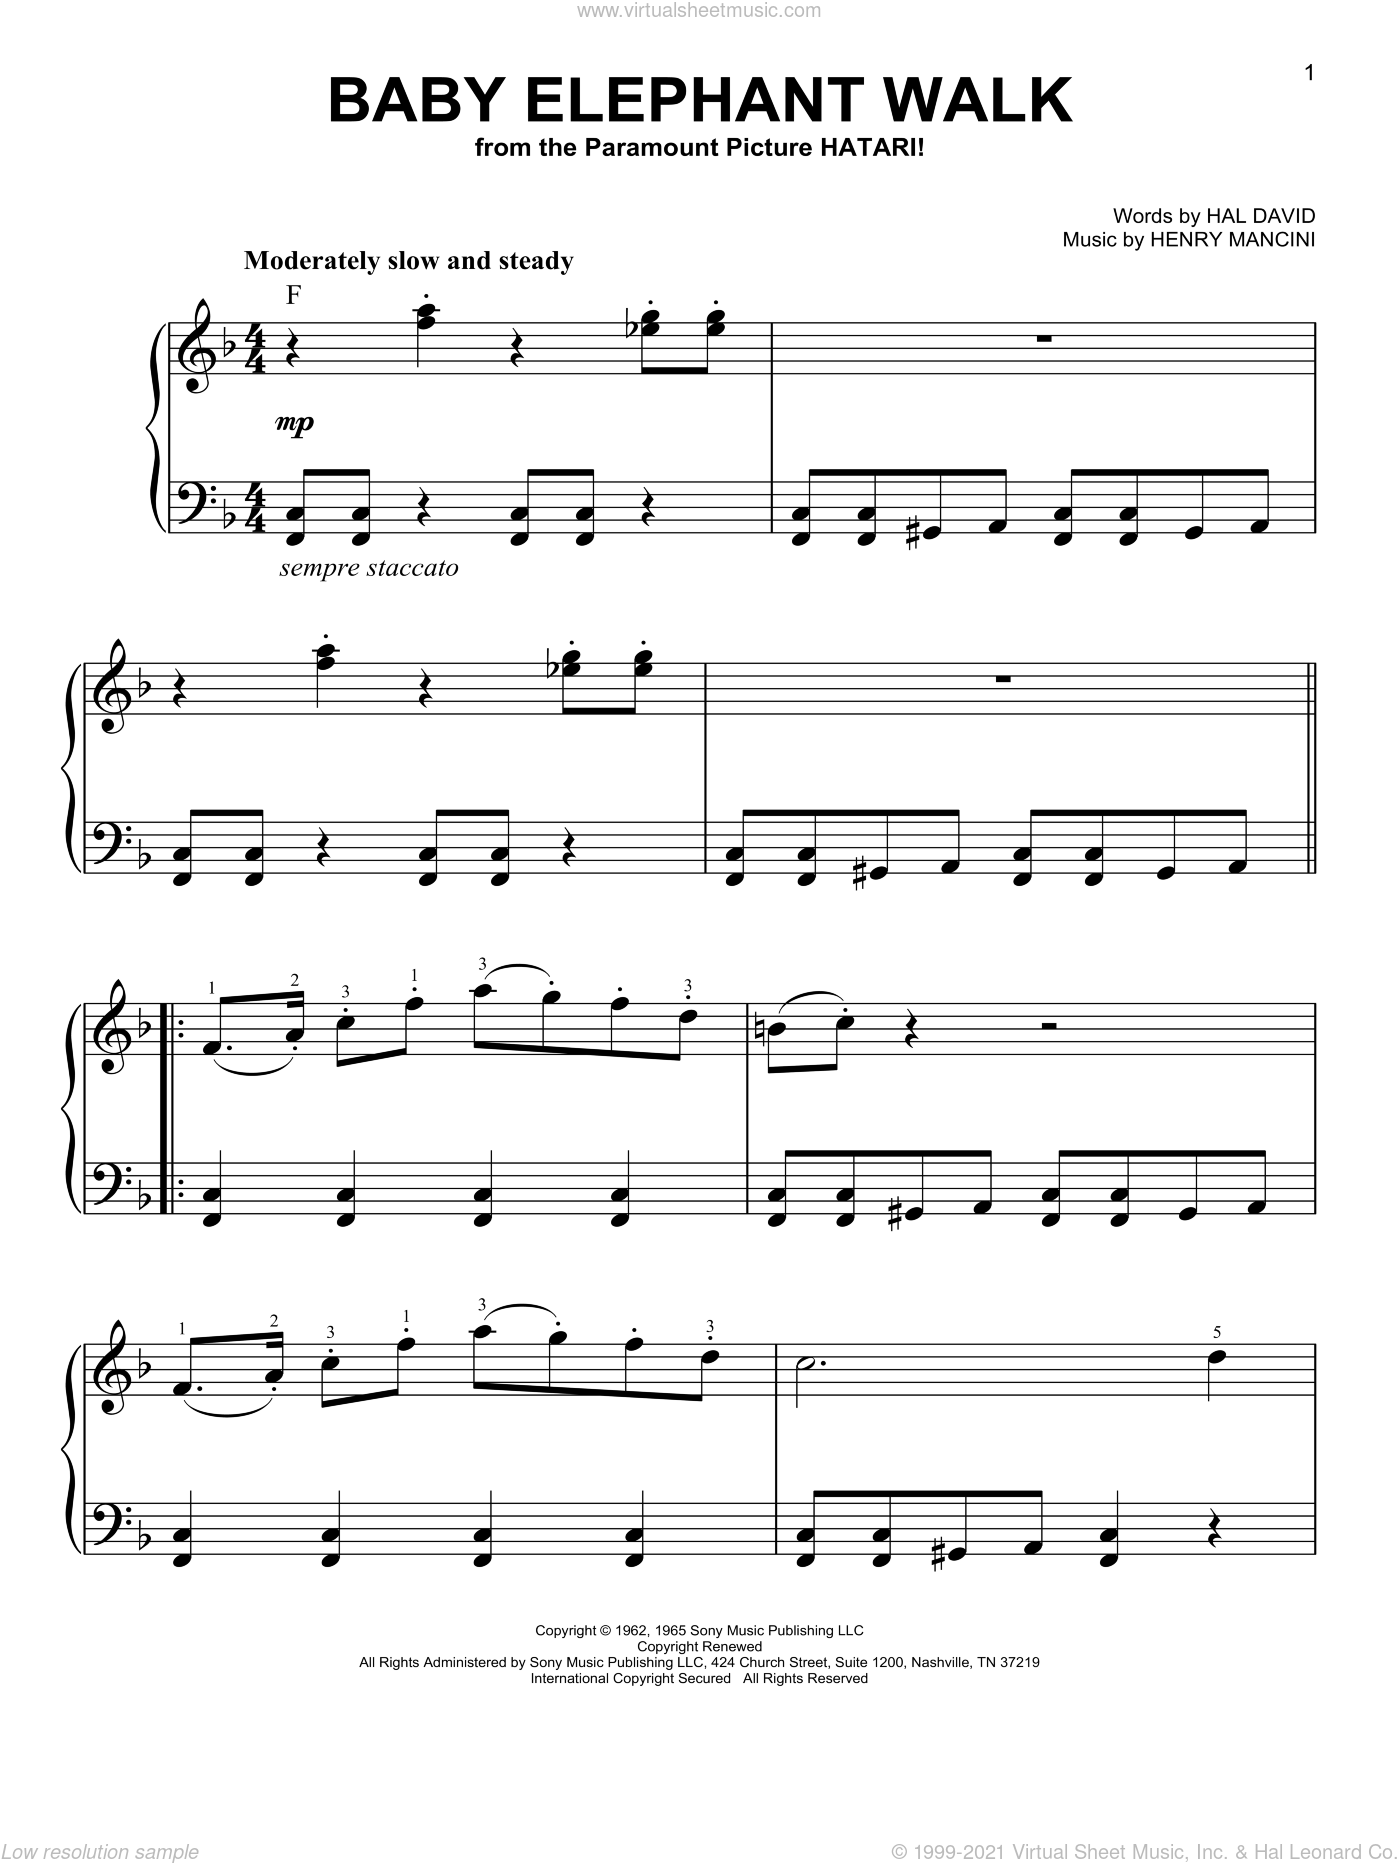 Baby Elephant Walk sheet music for piano solo by Henry Mancini and Hal David, easy skill level